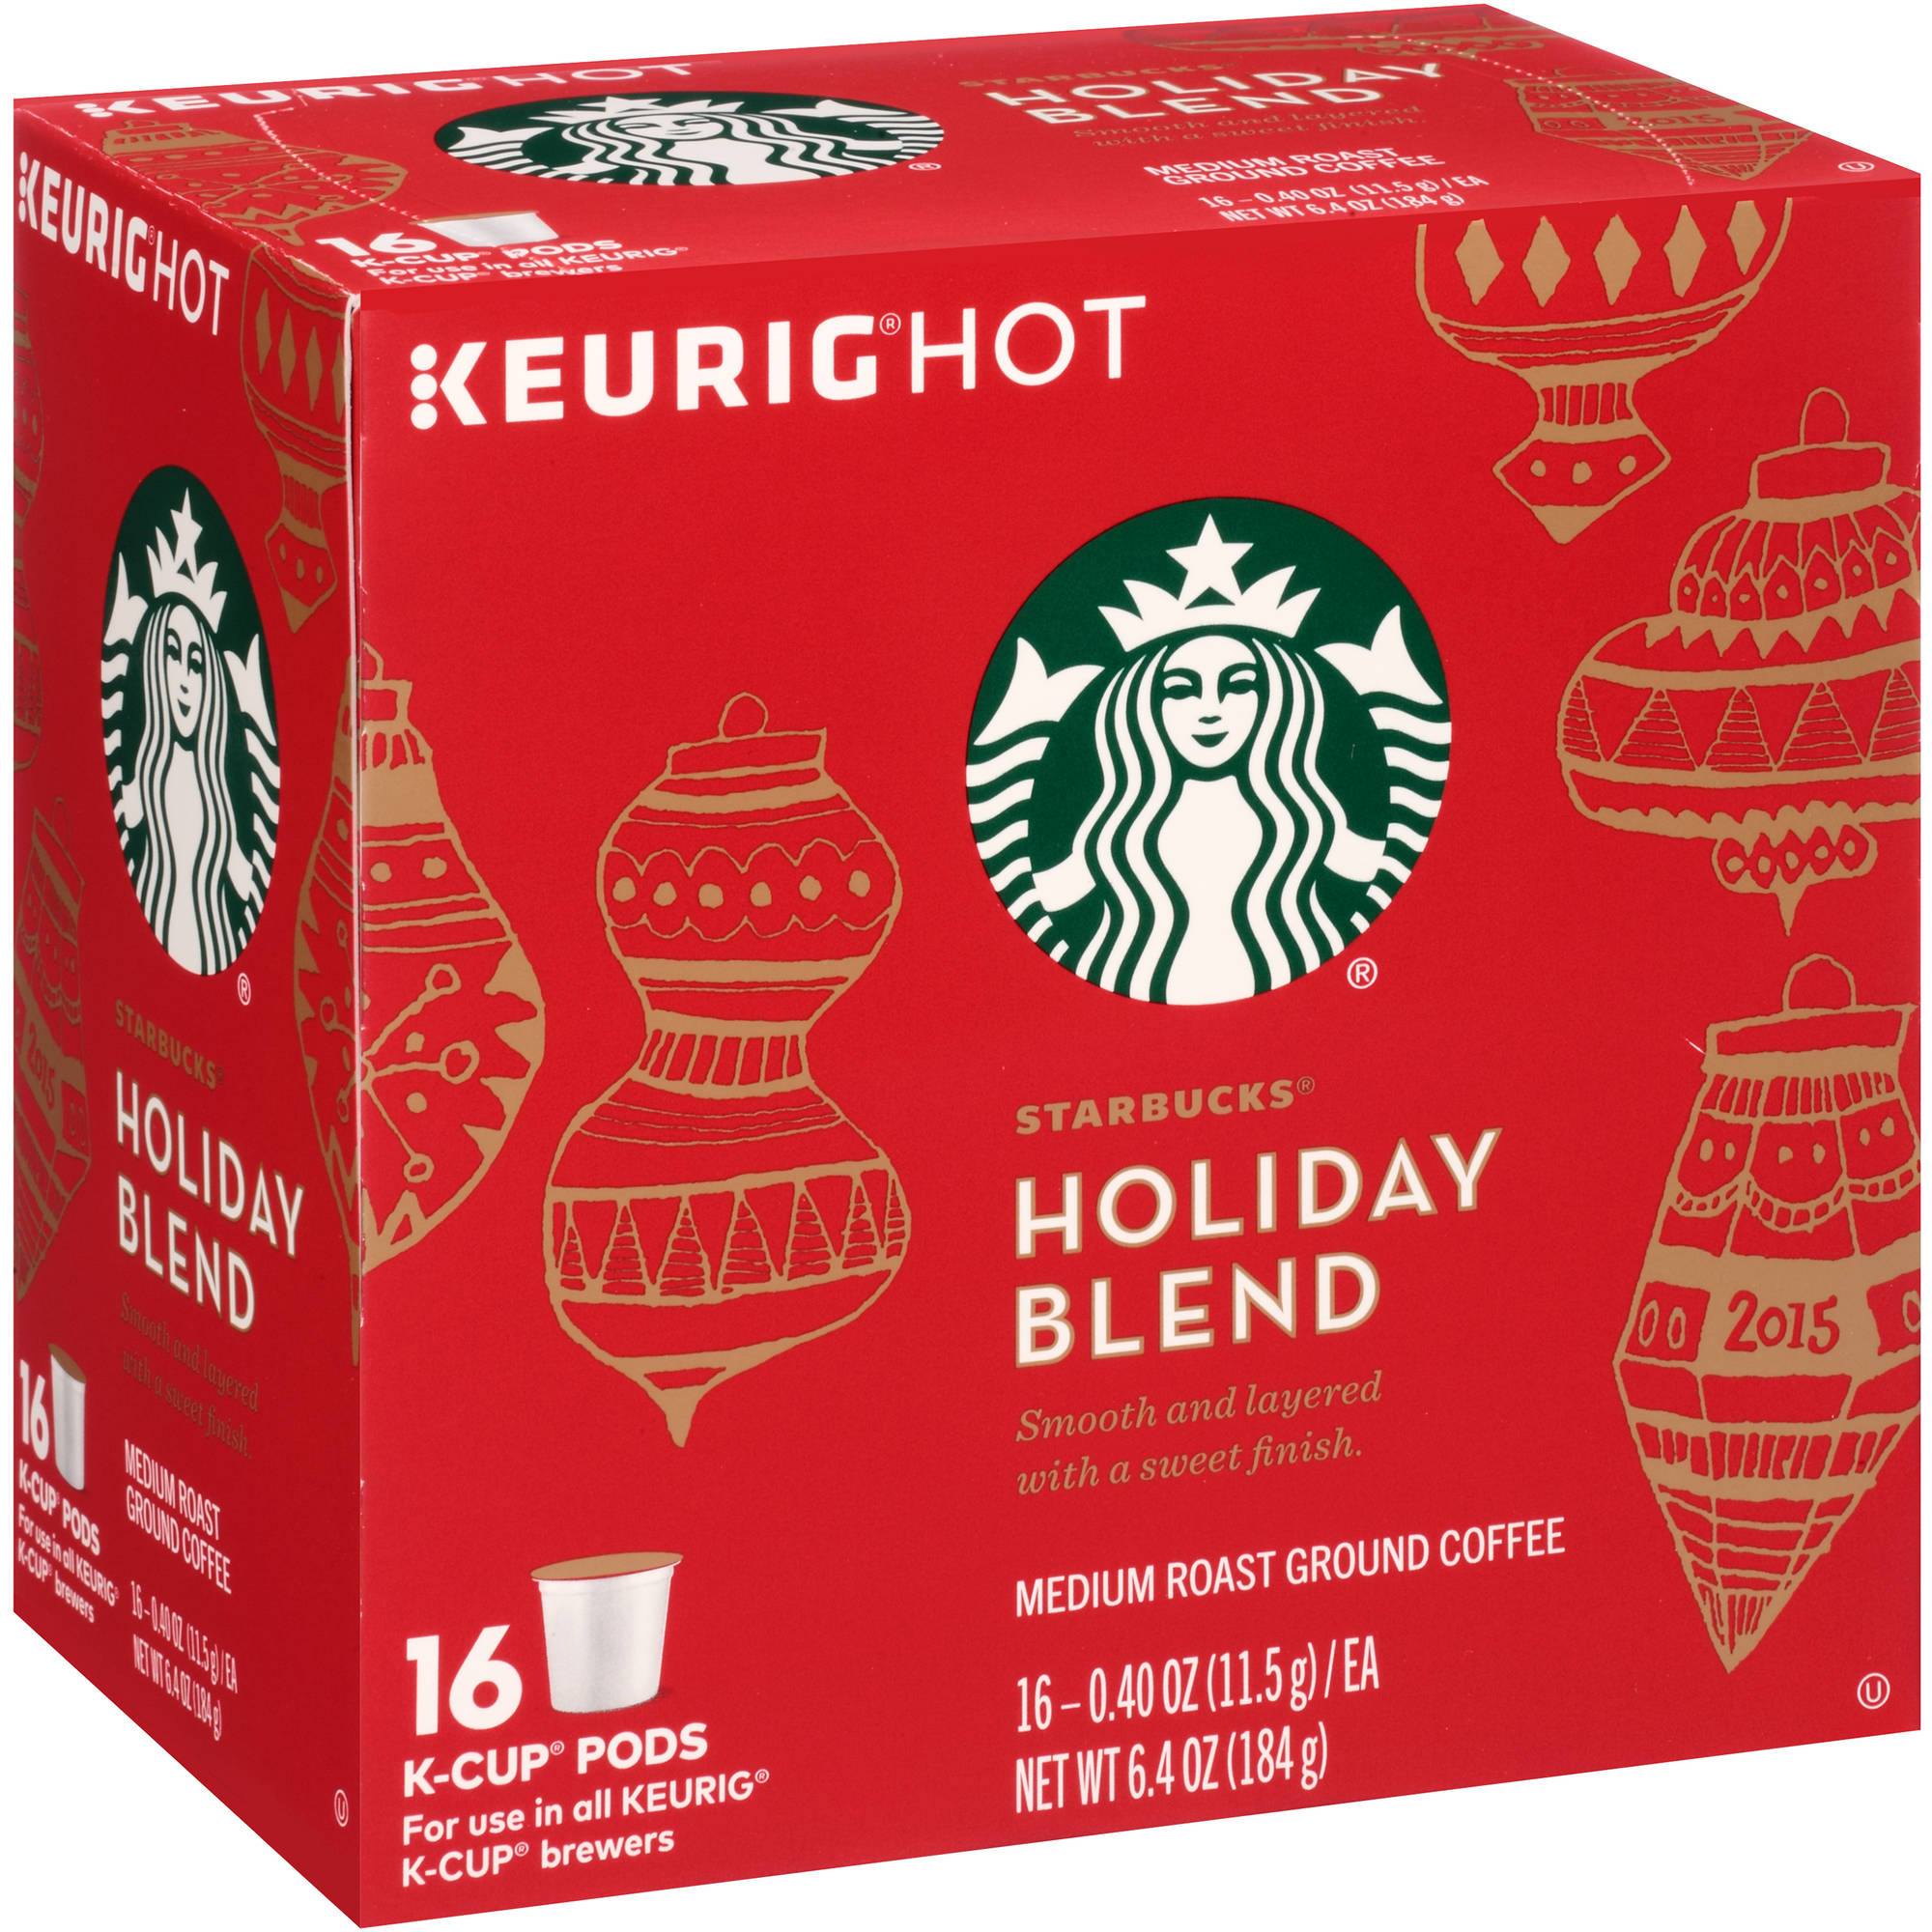 Starbucks Holiday Blend Medium Roast Ground Coffee K-Cup Pods, 0.40 oz, 16 count